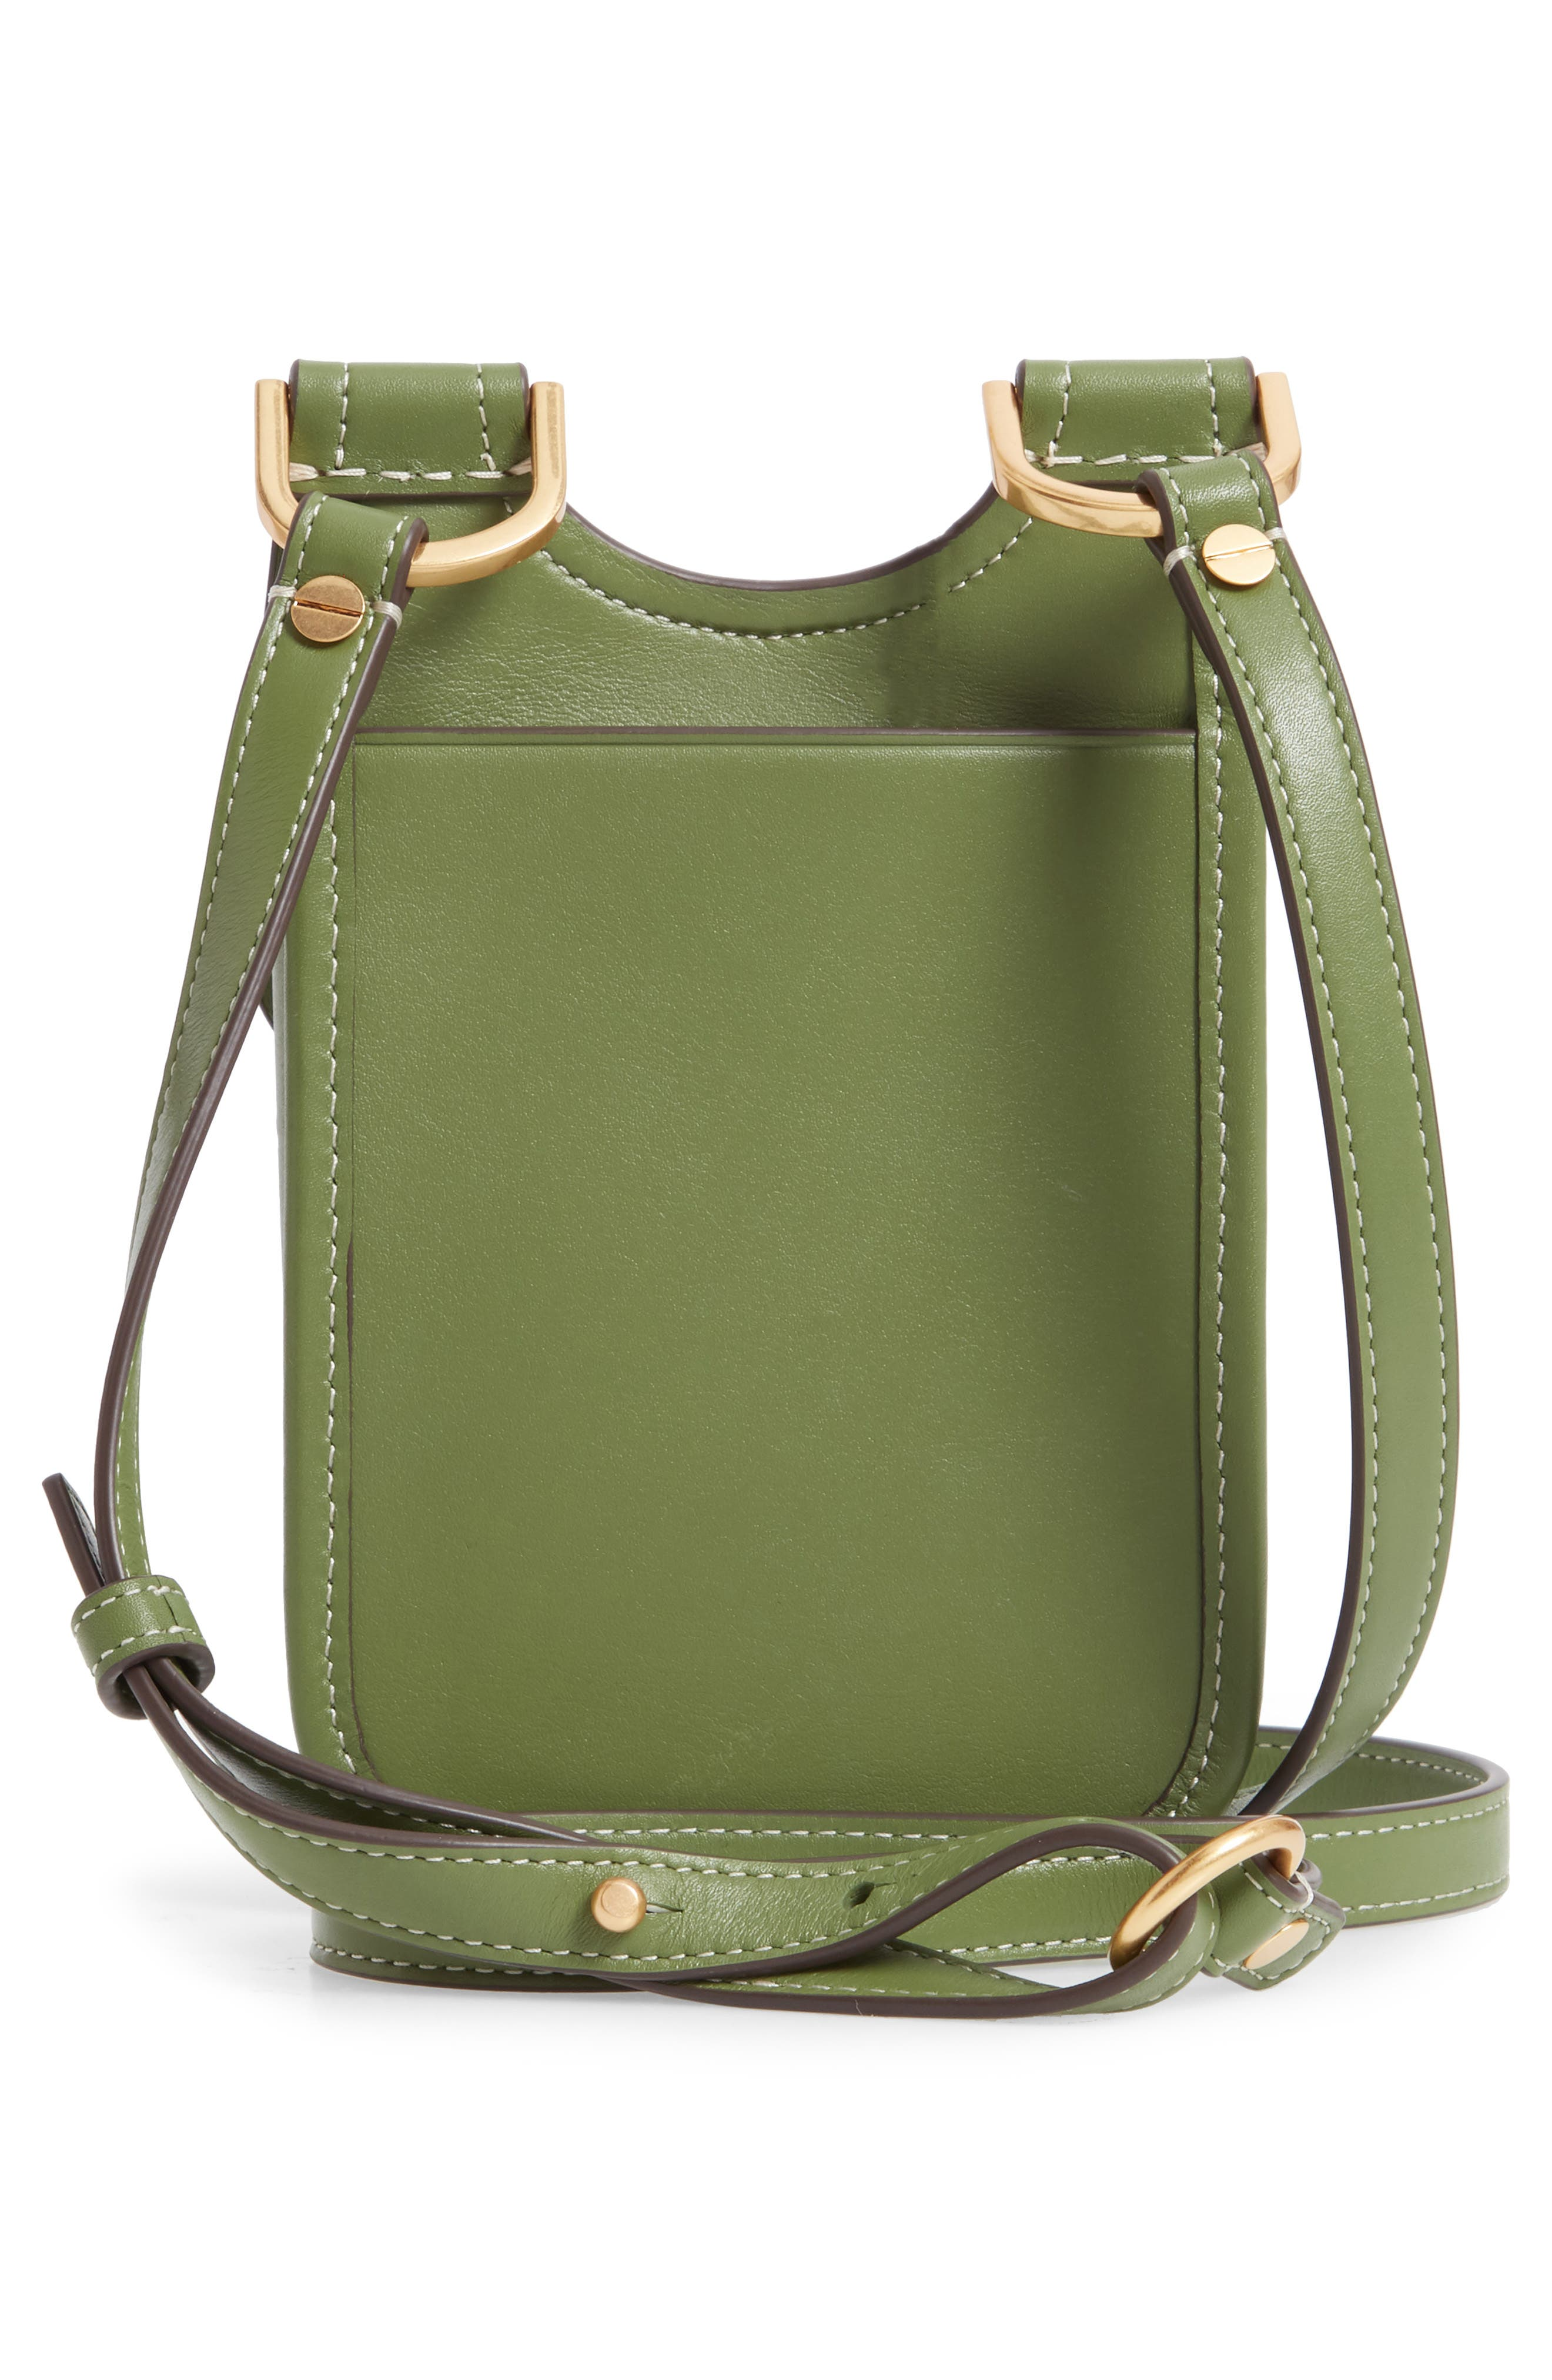 TORY BURCH, James Leather Phone Crossbody Bag, Alternate thumbnail 3, color, SPINACH